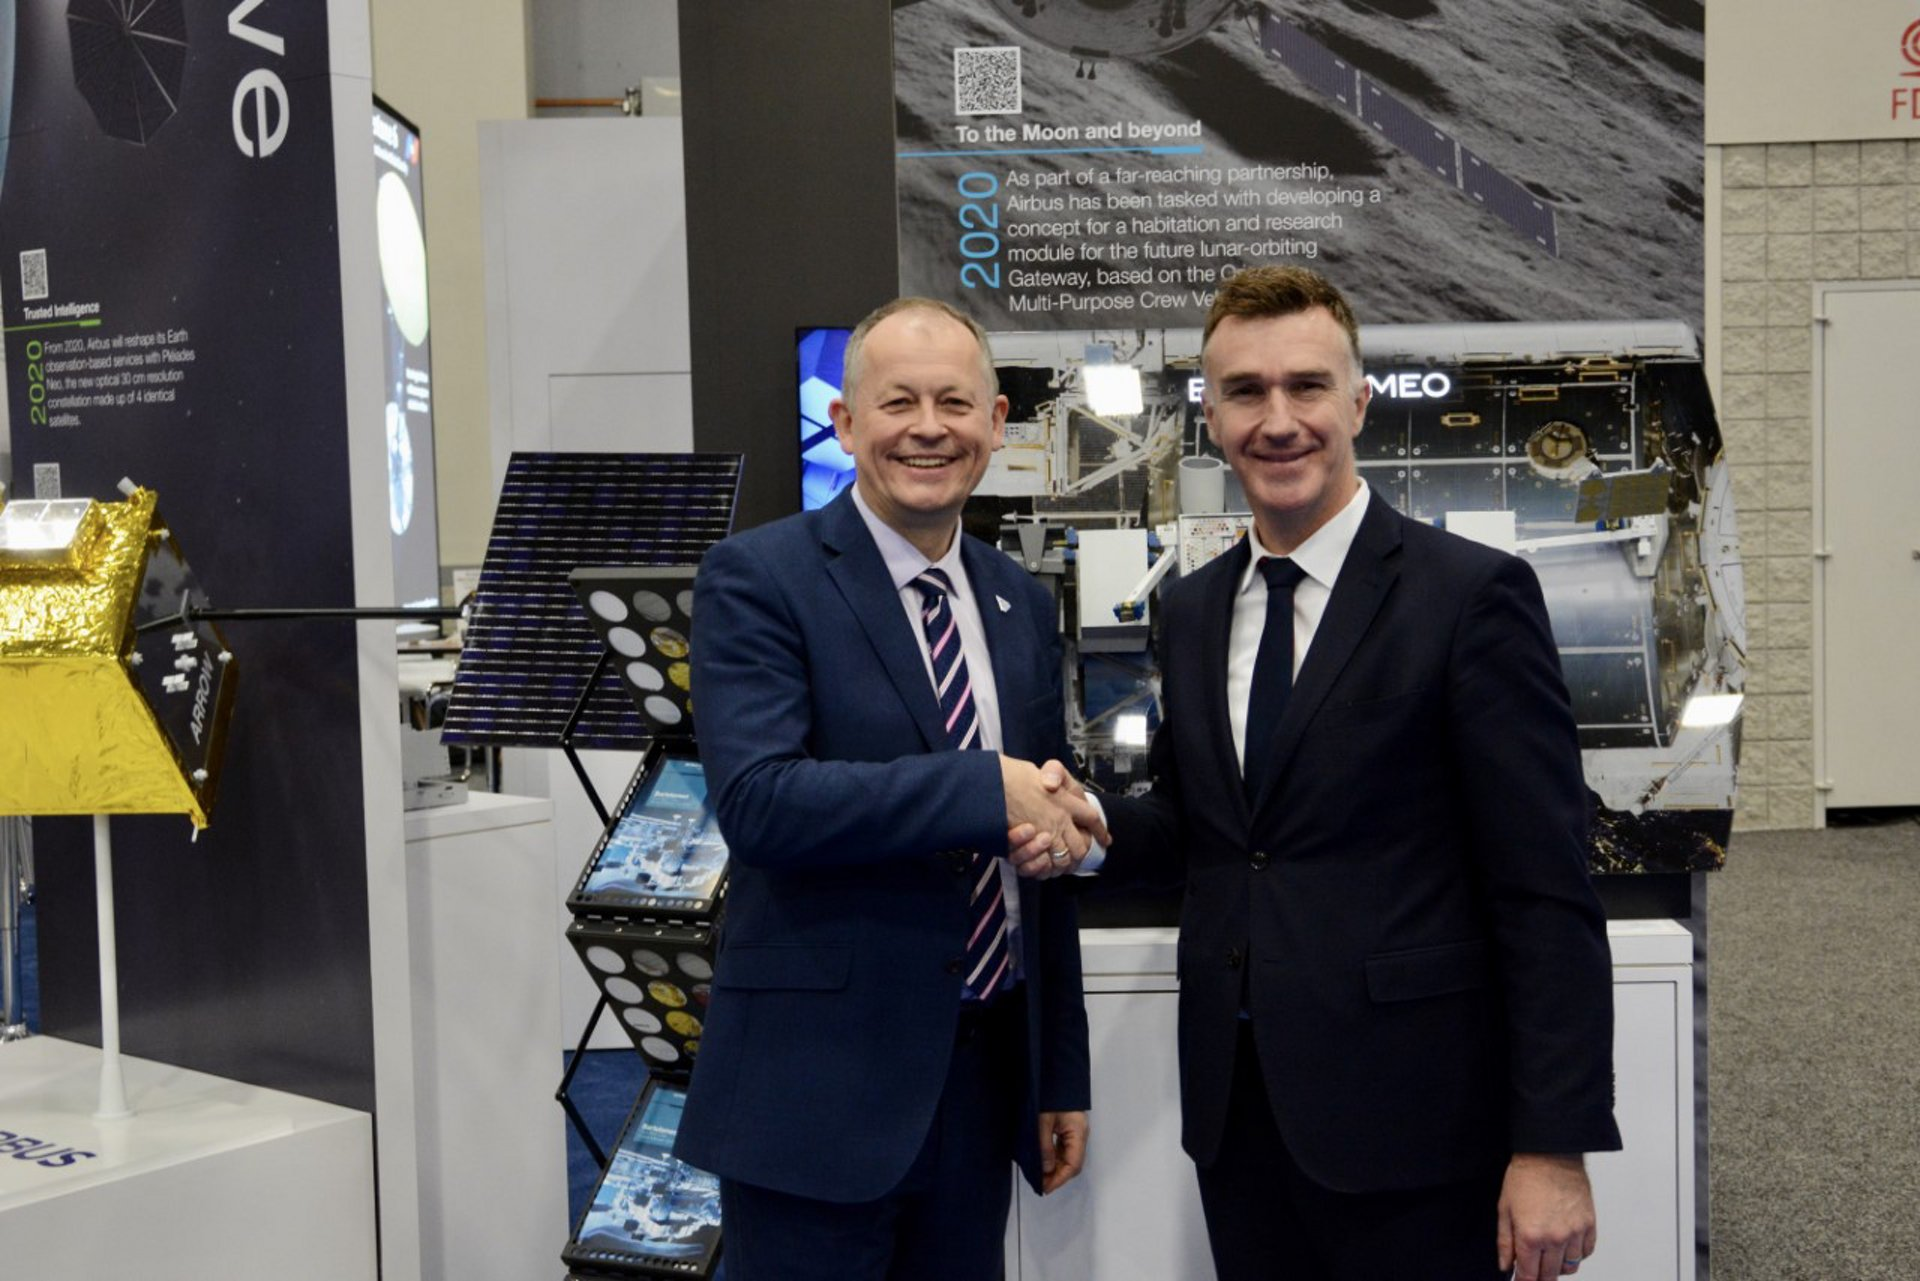 The European Space Agency (ESA) and Airbus Defence and Space today signed a Statement of Intent on their common interest to use the Bartolomeo external platform for a limited number of scientific missions on the International Space Station (ISS).